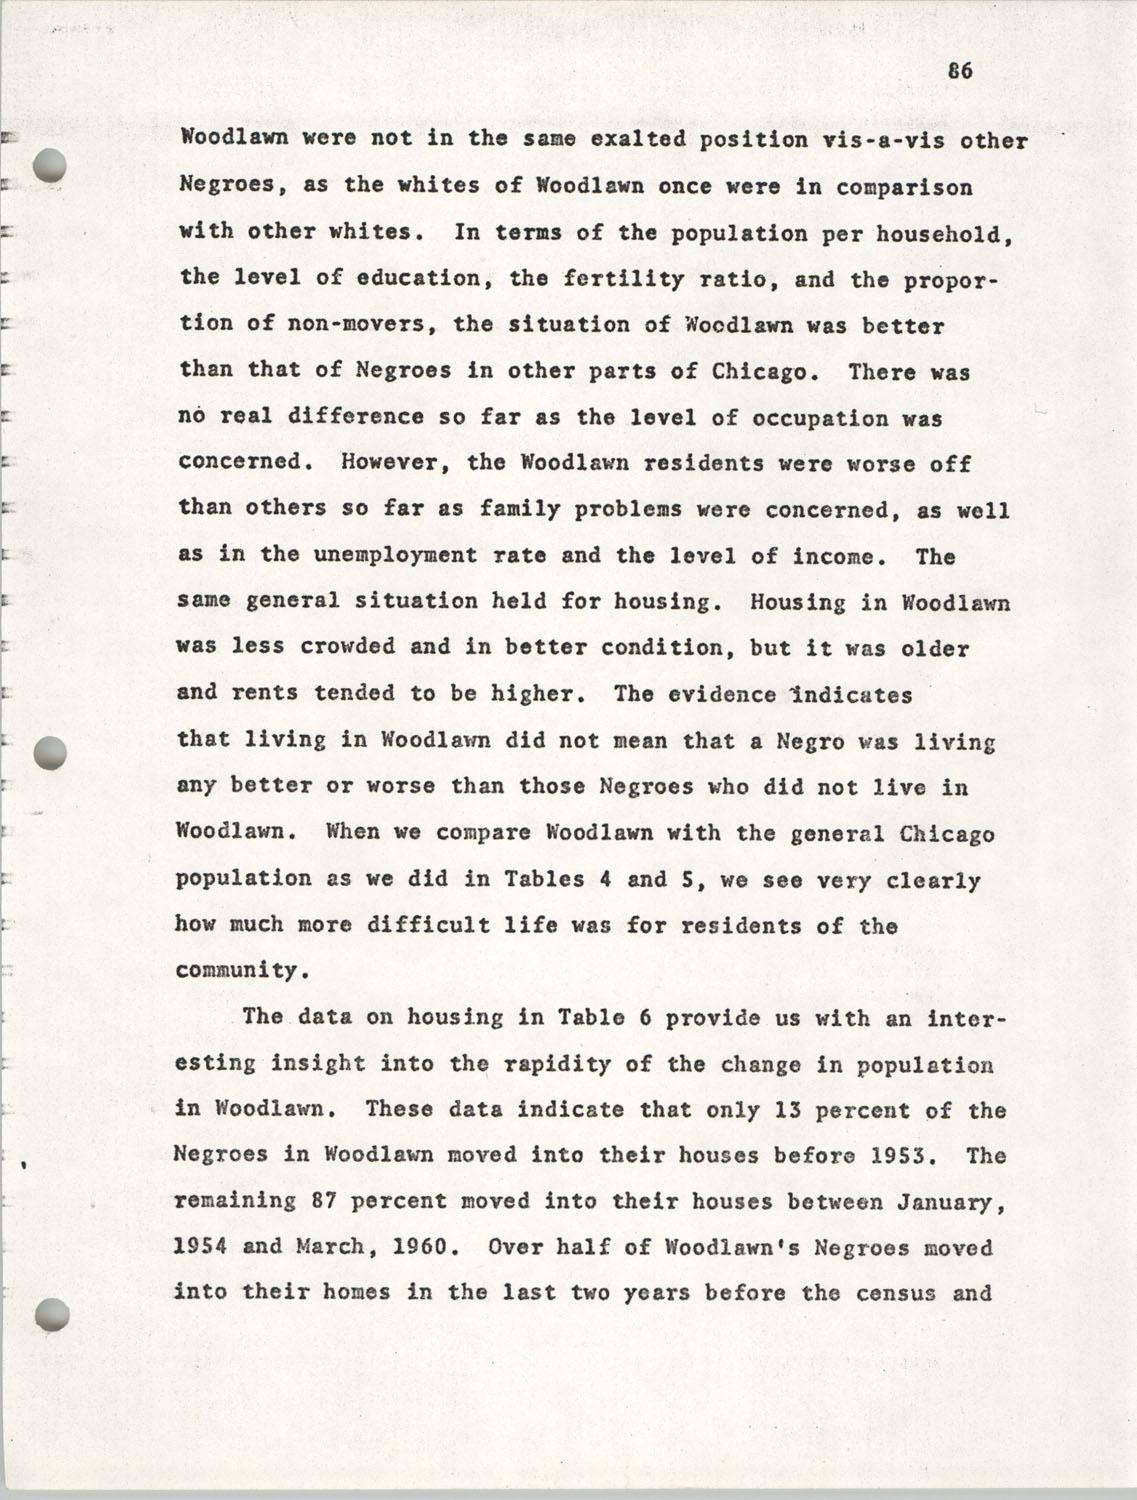 Citizen Participation. Democracy and Social Change, December 1, 1969, Page 86